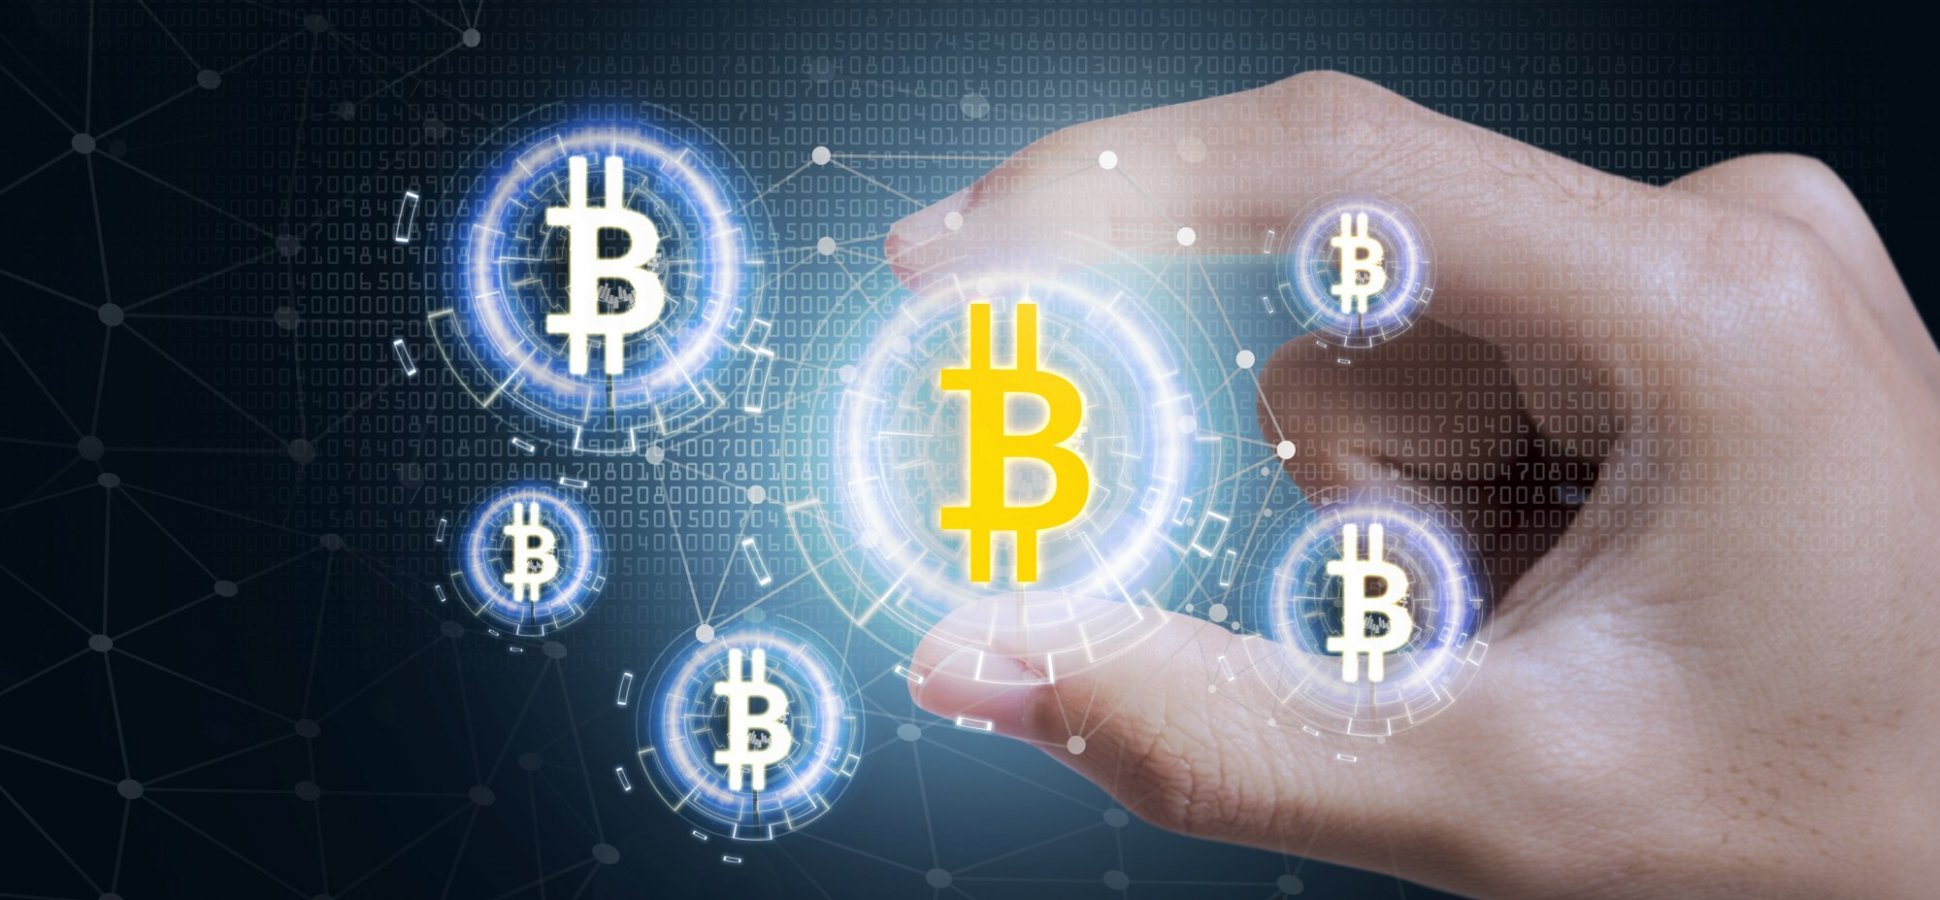 Is Bitcoin a Good Investment Heading Into 2018?